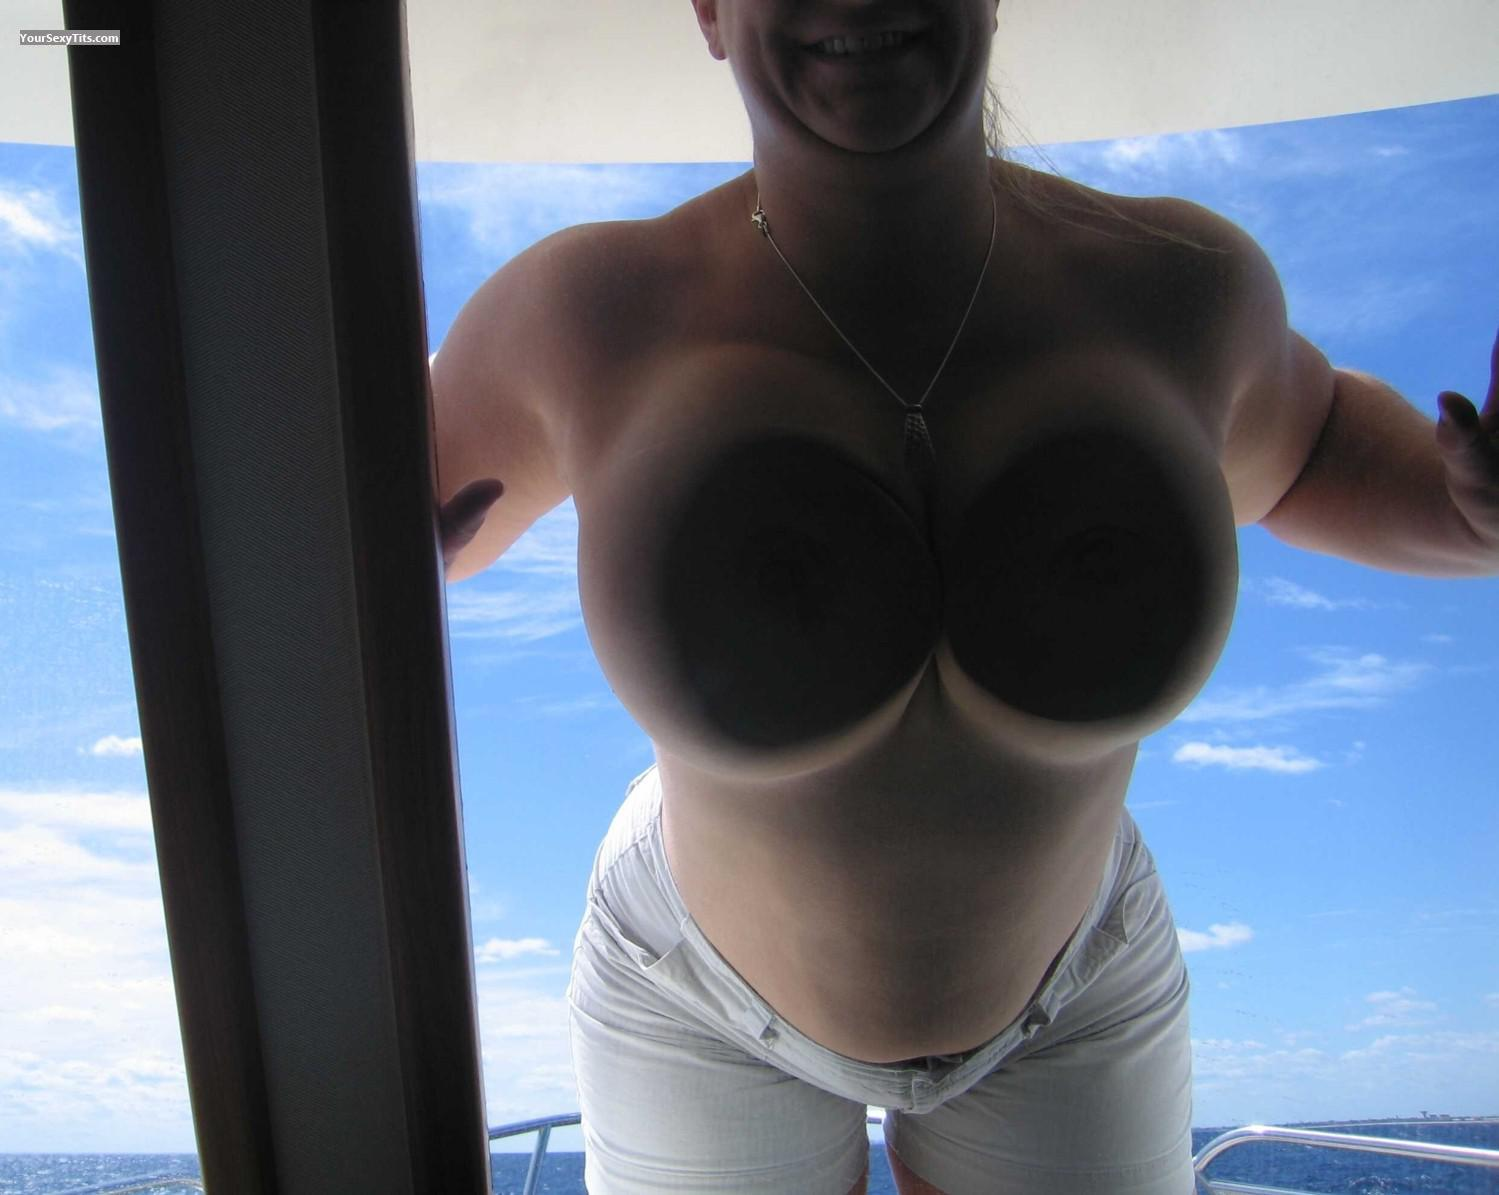 Tit Flash: Very Big Tits - Faans Flasher from United States